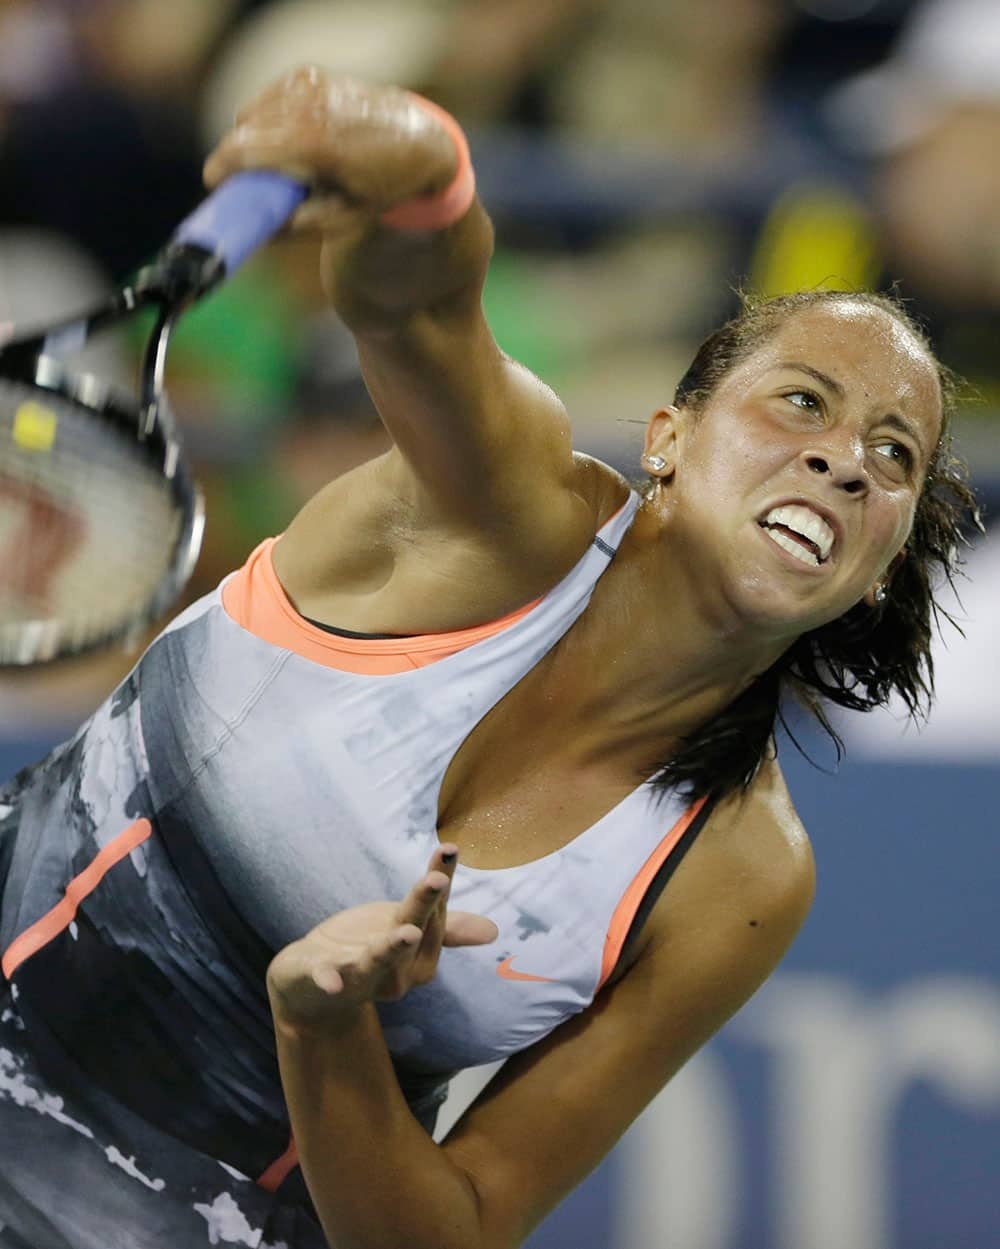 Madison Key serves to Serbia's Jelena Jankovic during the opening round of the US Open tennis tournament.